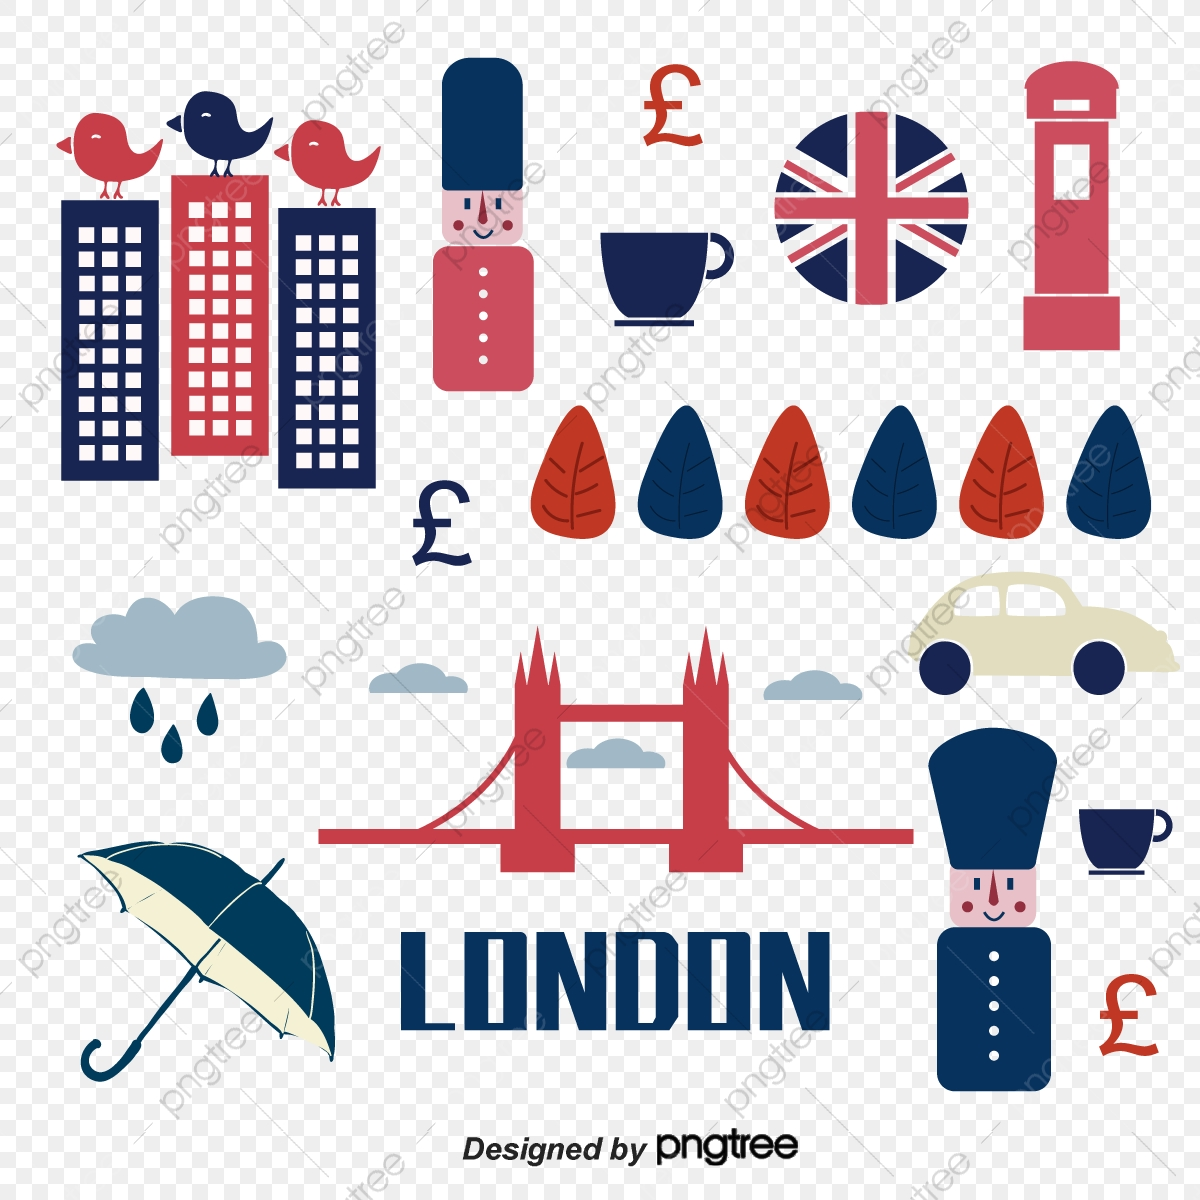 londres illustration de la conception en mati u00e8re de